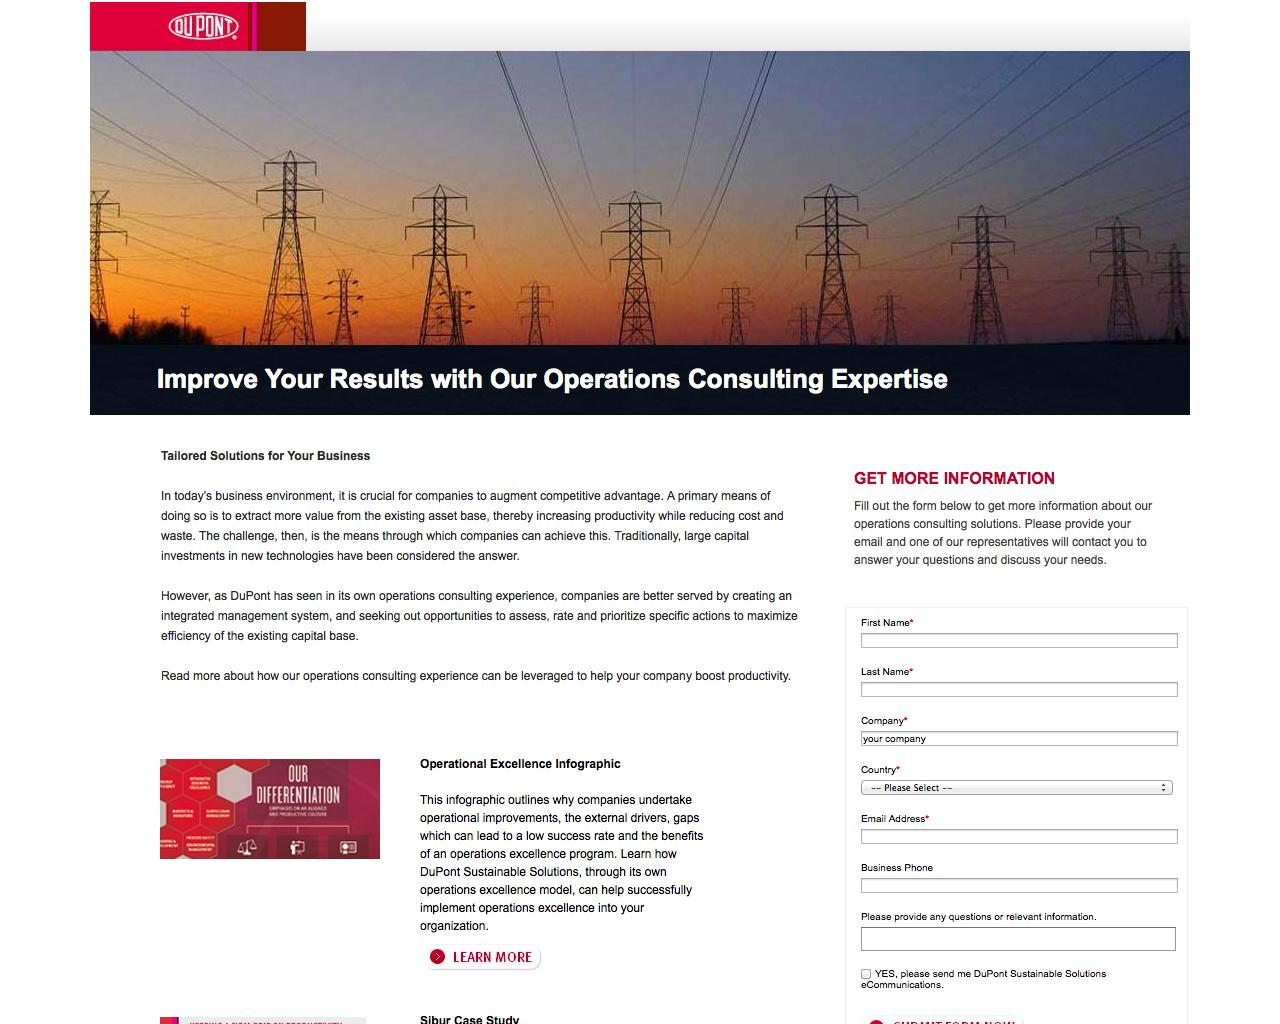 Screenshot of dupont.com - Operations Consulting | DuPont Operations Consulting - captured Oct. 27, 2014